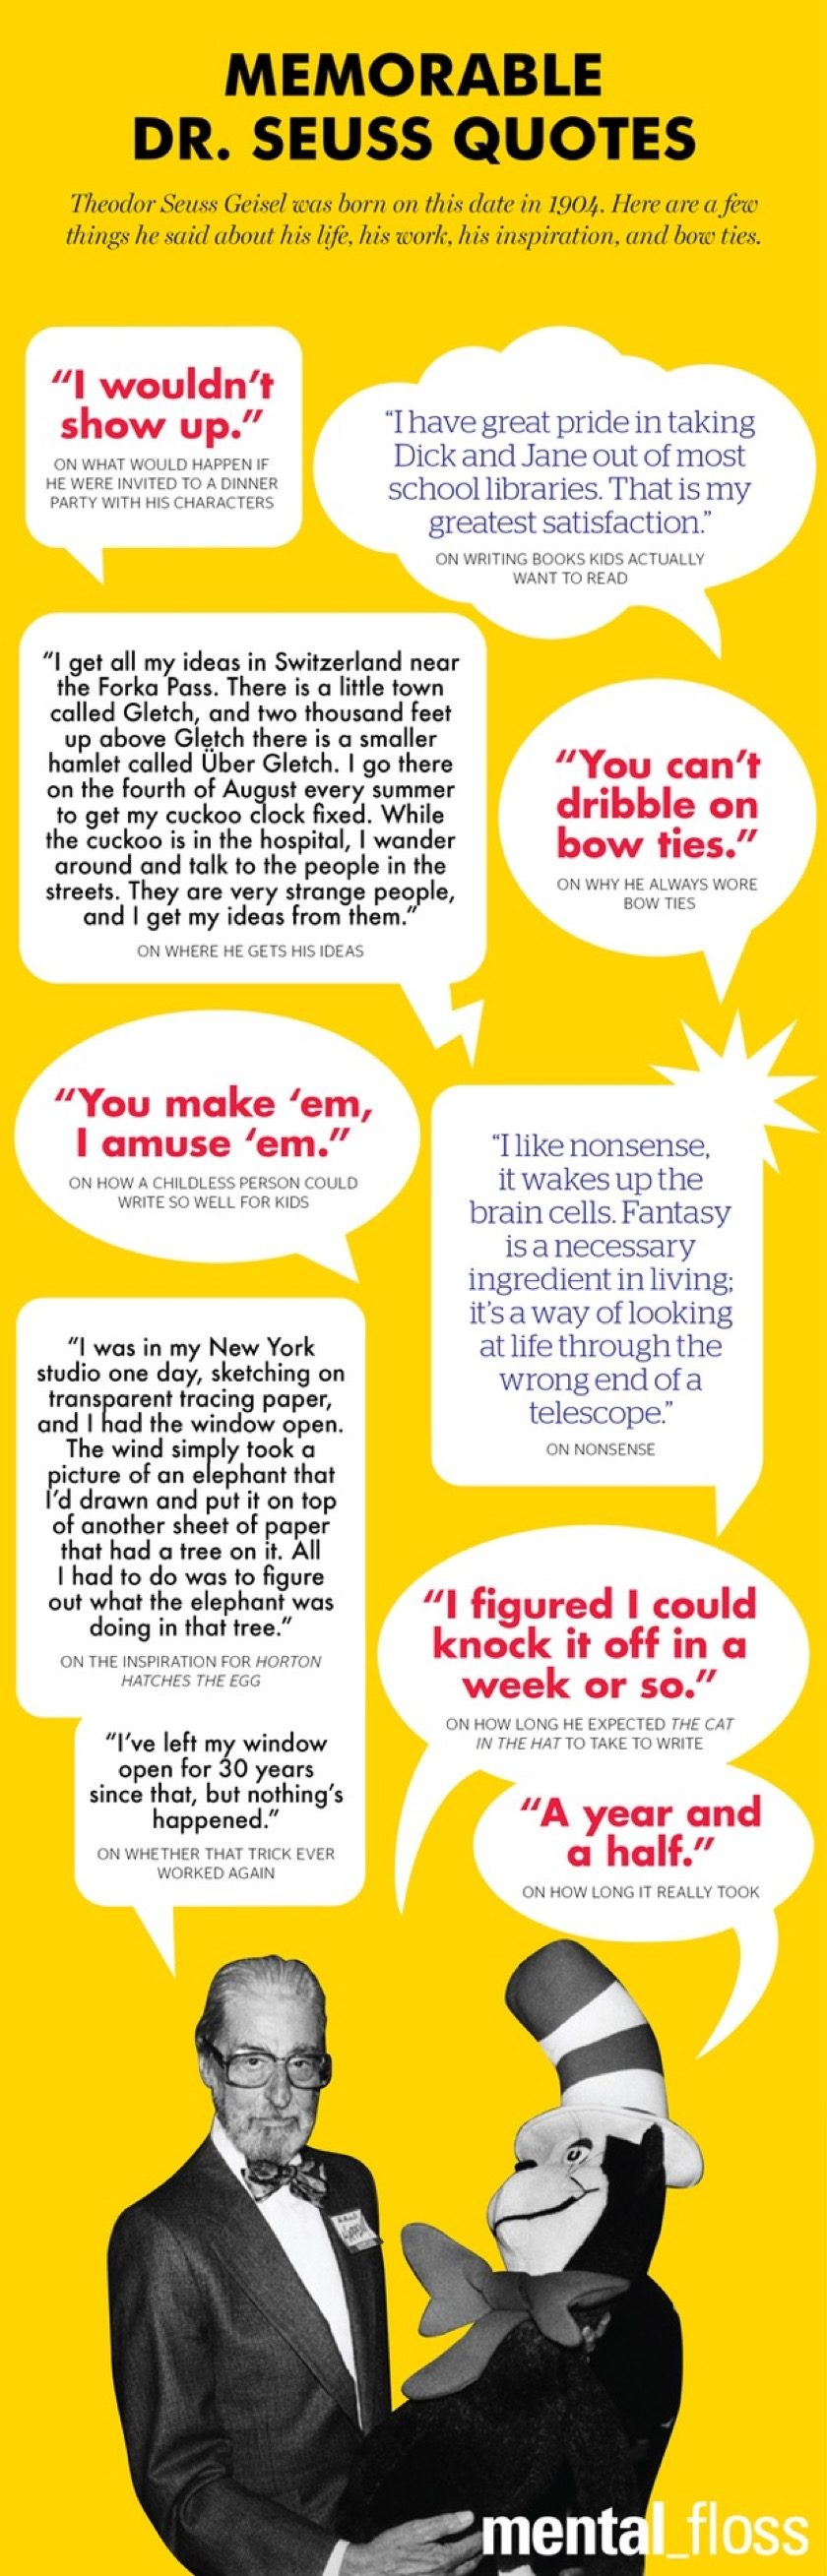 Unforgettable quotes by Dr. Seuss